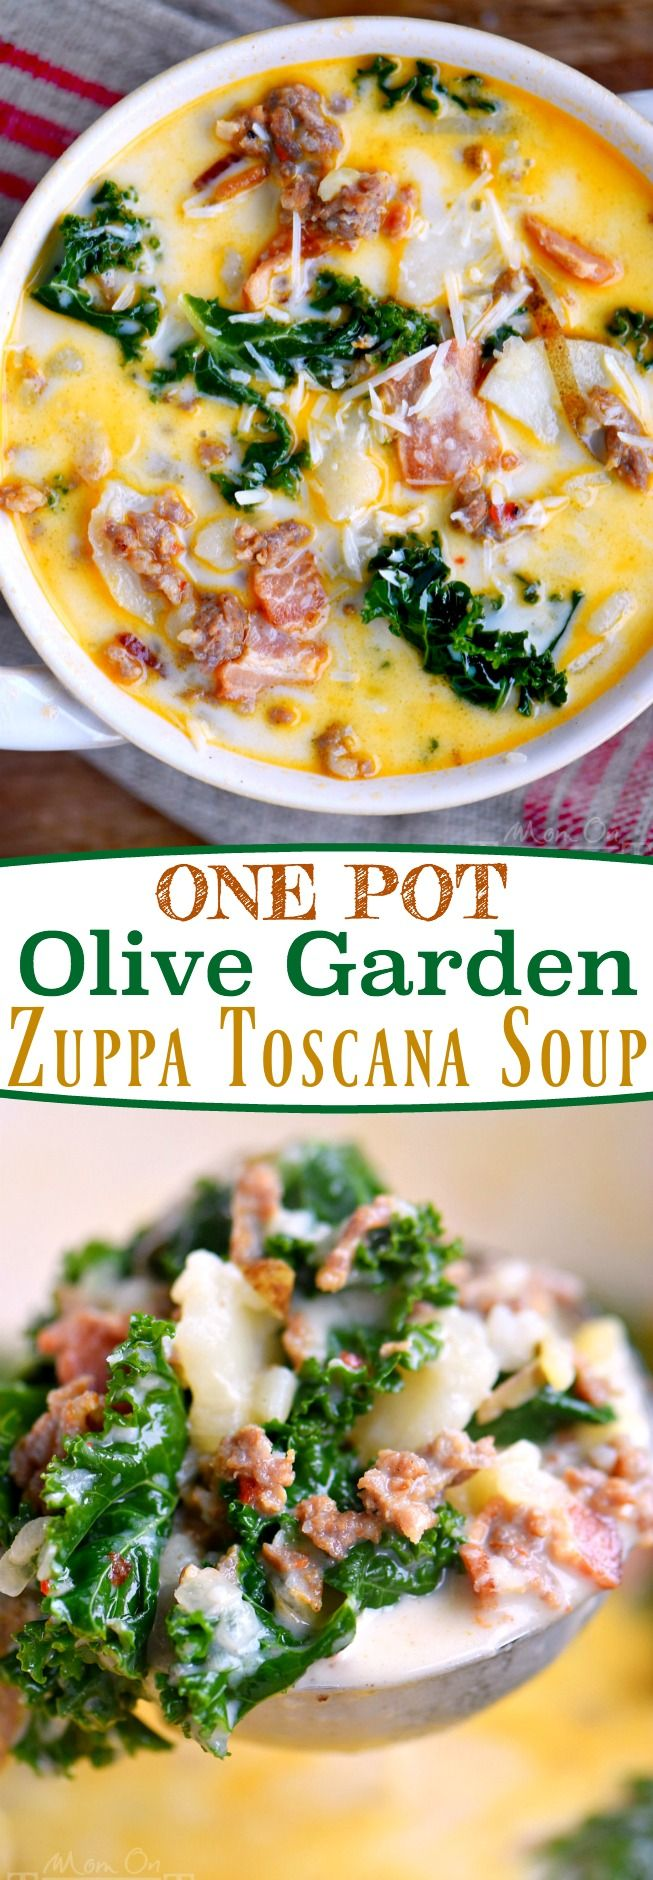 One Pot Olive Garden Zuppa Toscana Soup! Comfort food at it's best! Loaded with bacon, sausage, p